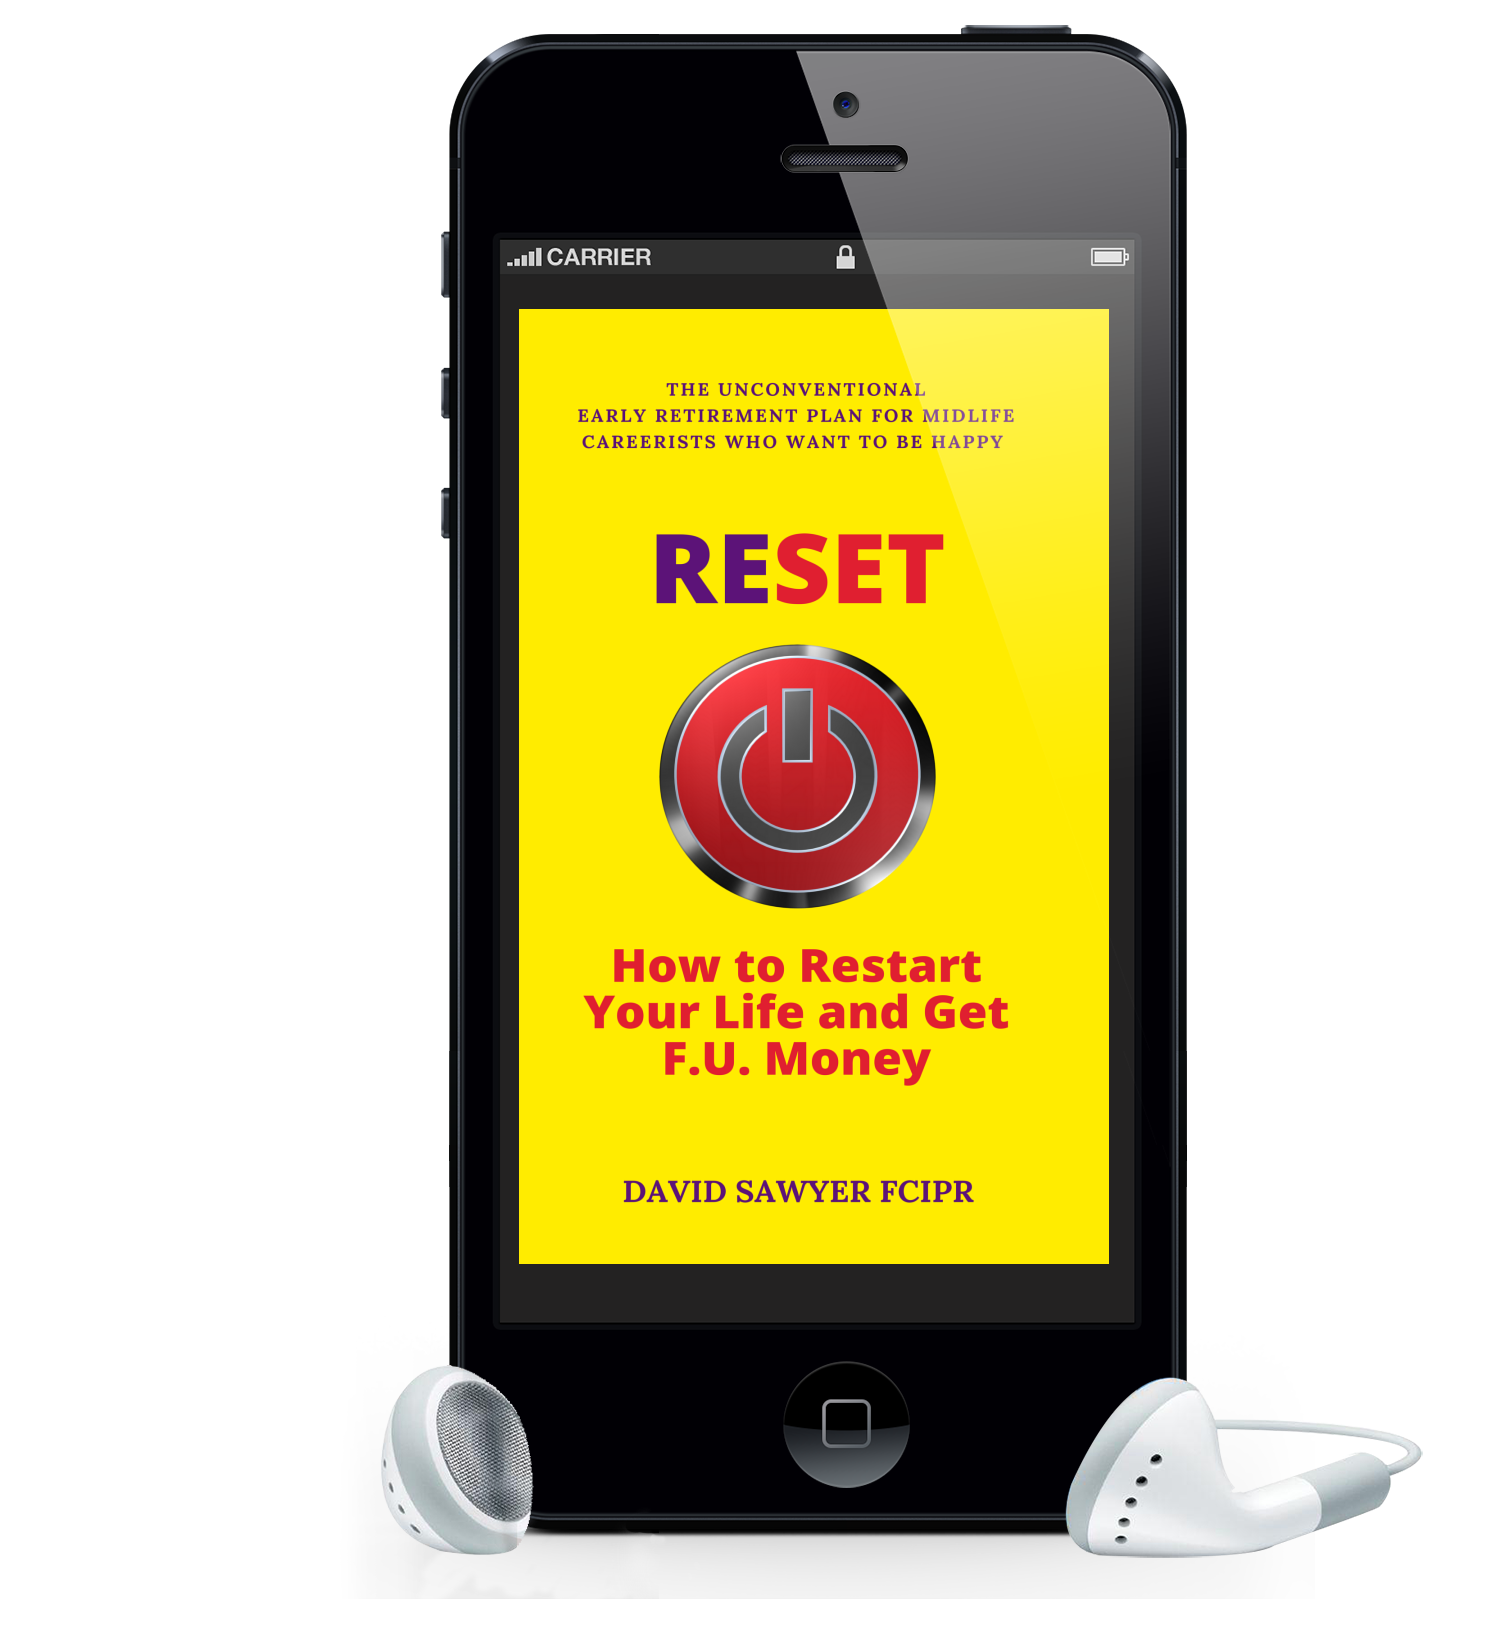 reset book self-help david sawyer kindle smartphone